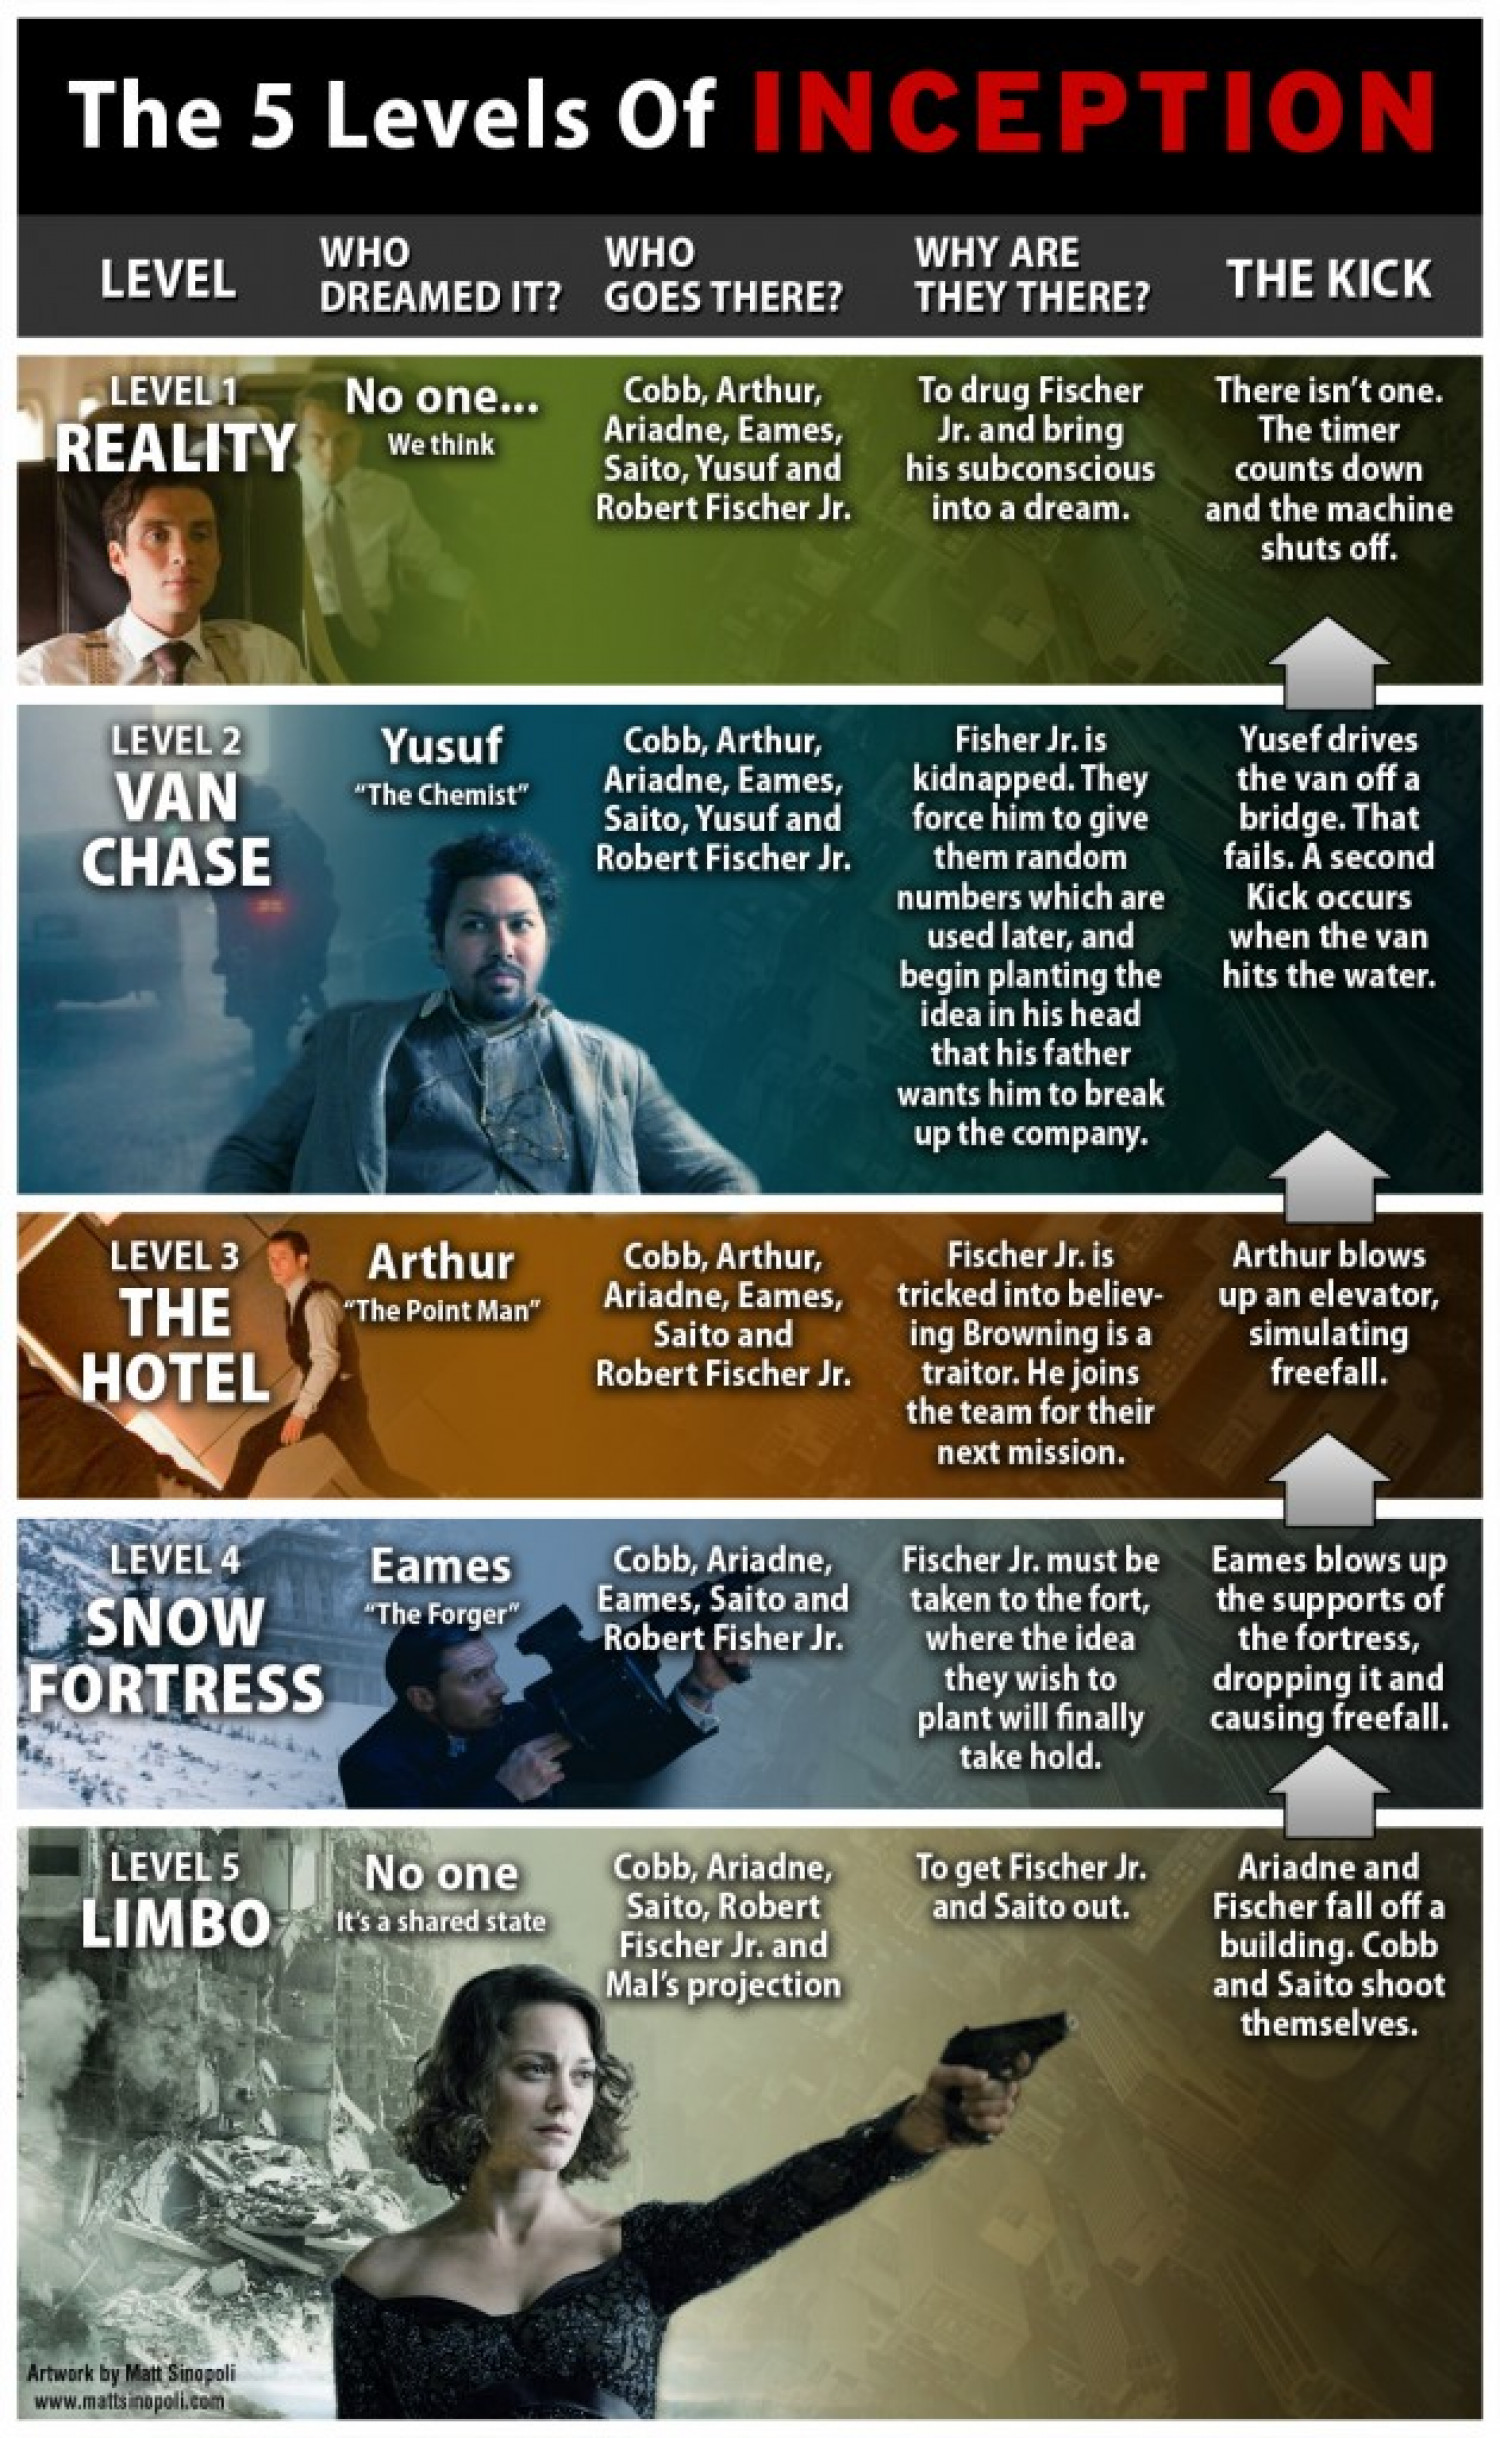 The 5 Levels Of Inception Infographic